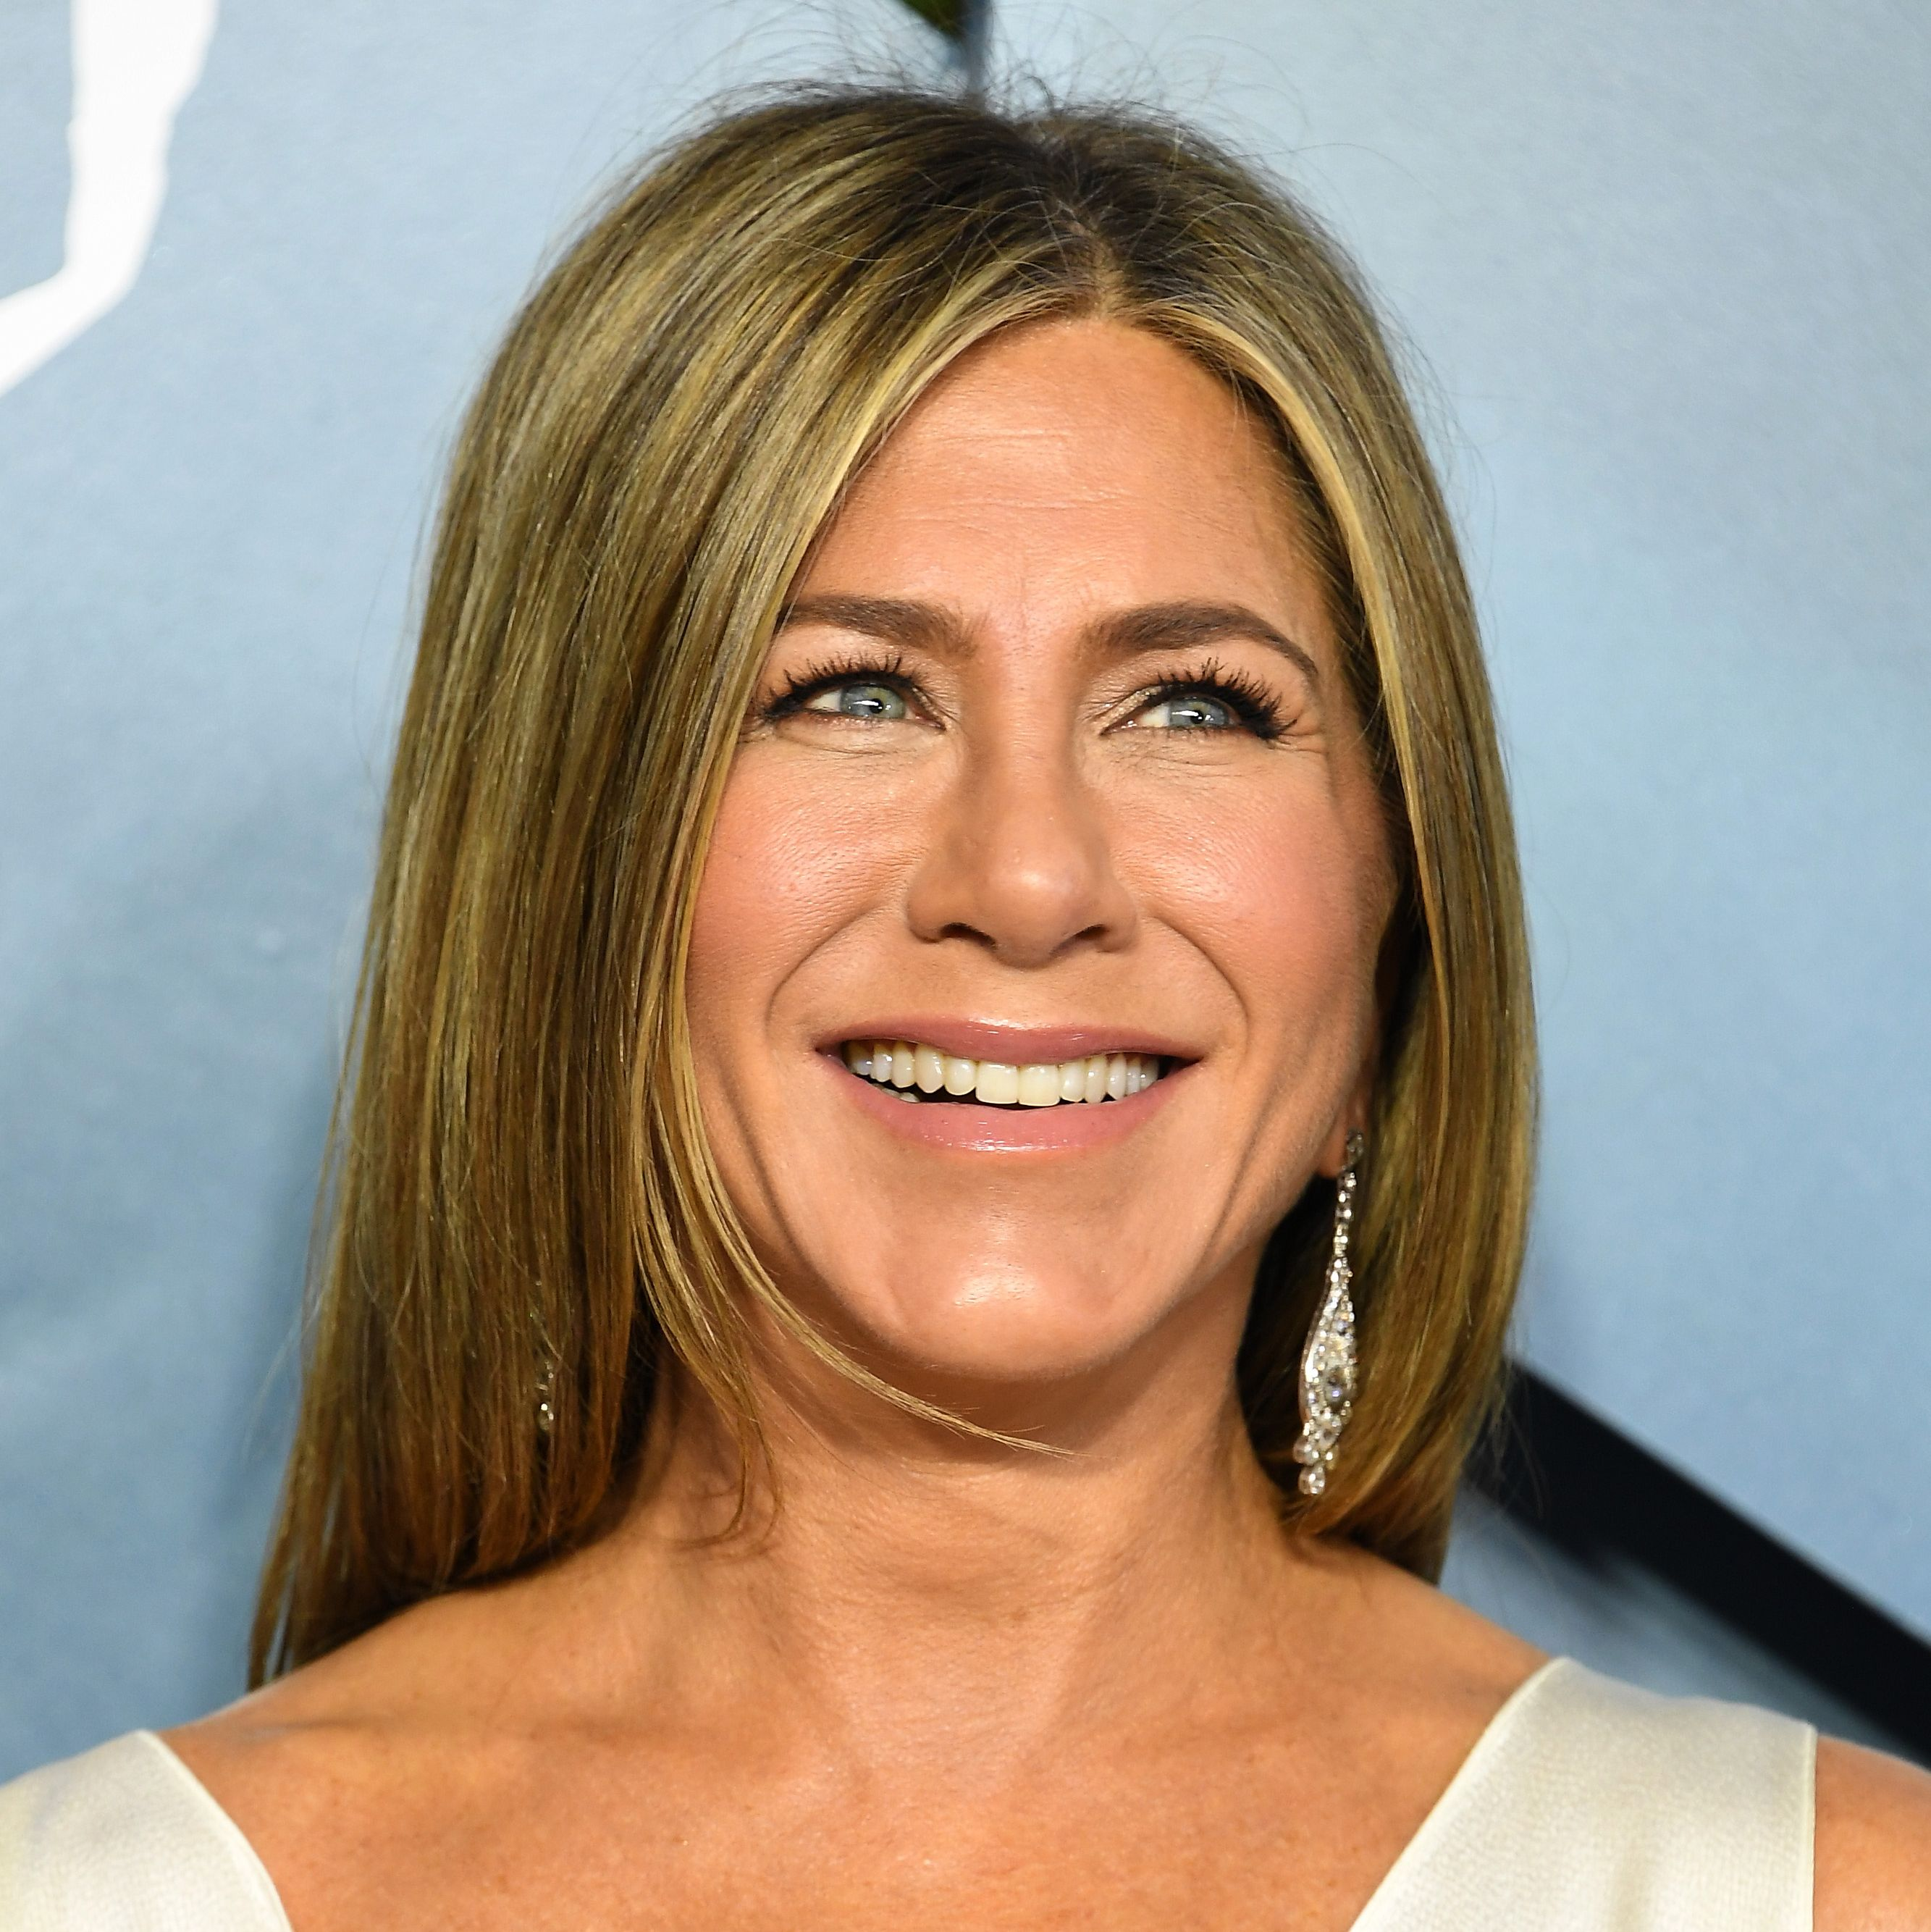 Jennifer Aniston Describes Rumors of Her and Brad Pitt's Reunion as